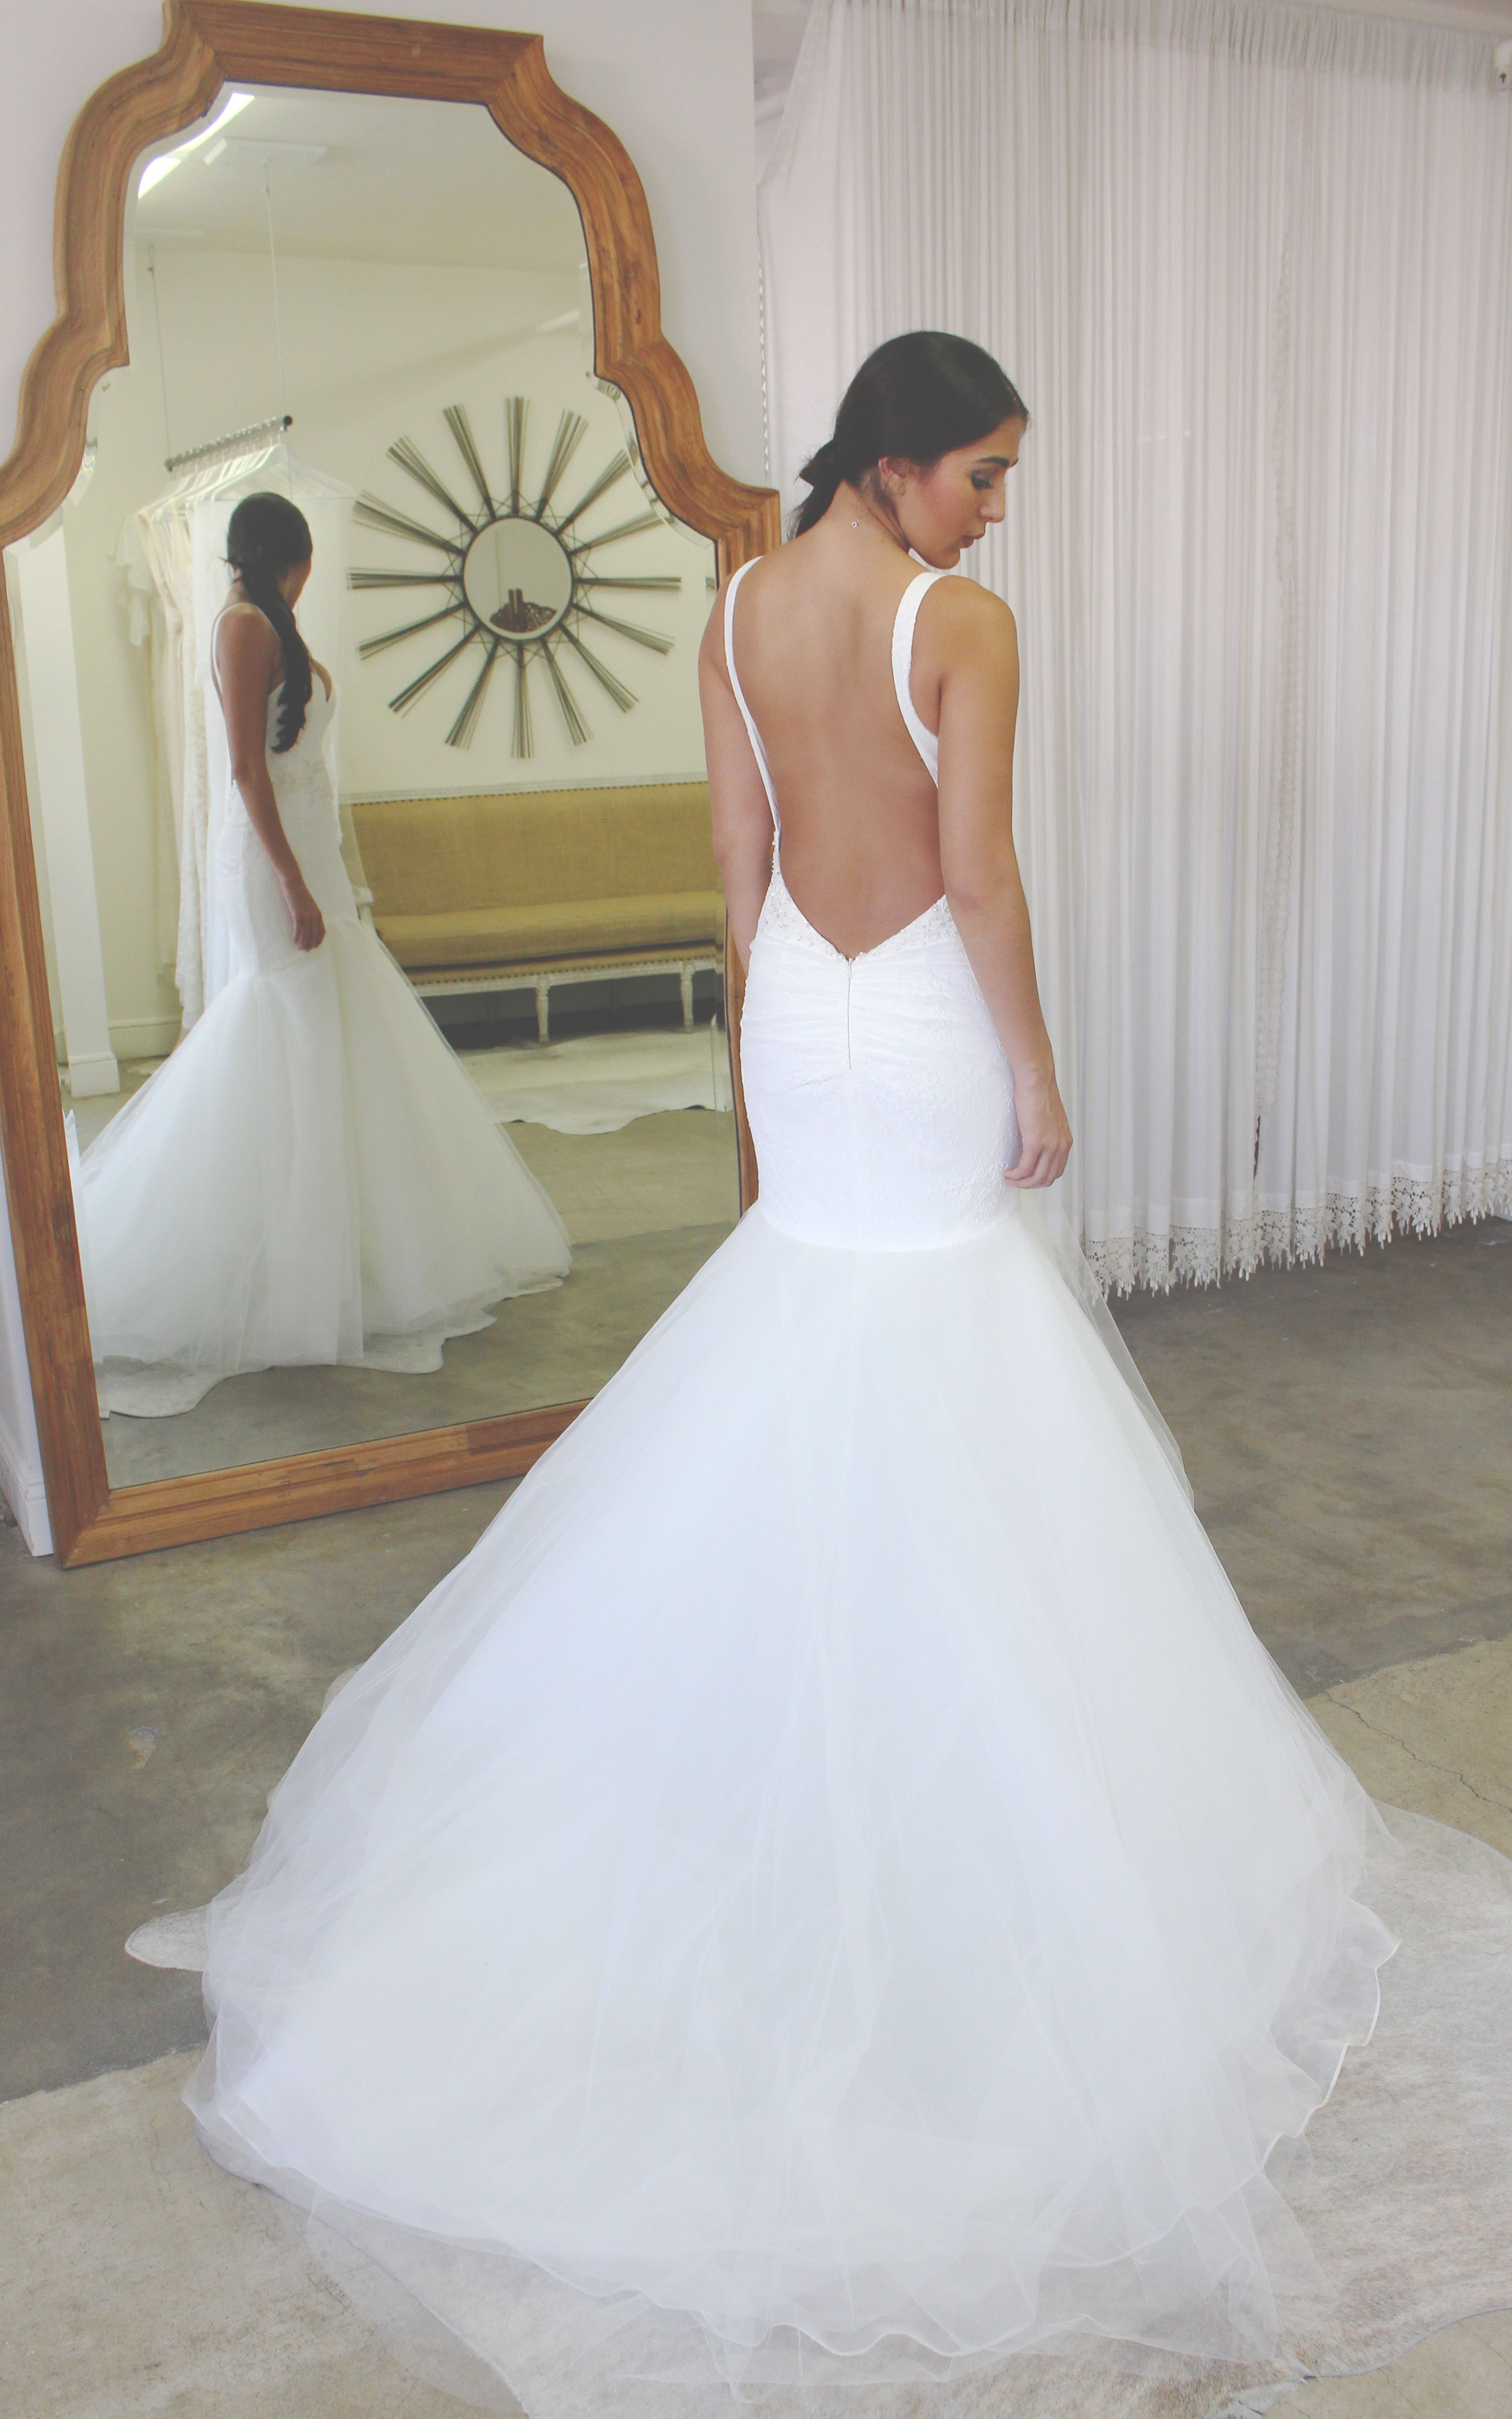 Charleston Gown  Wedding Style  Pinterest  Wedding dresses Gowns